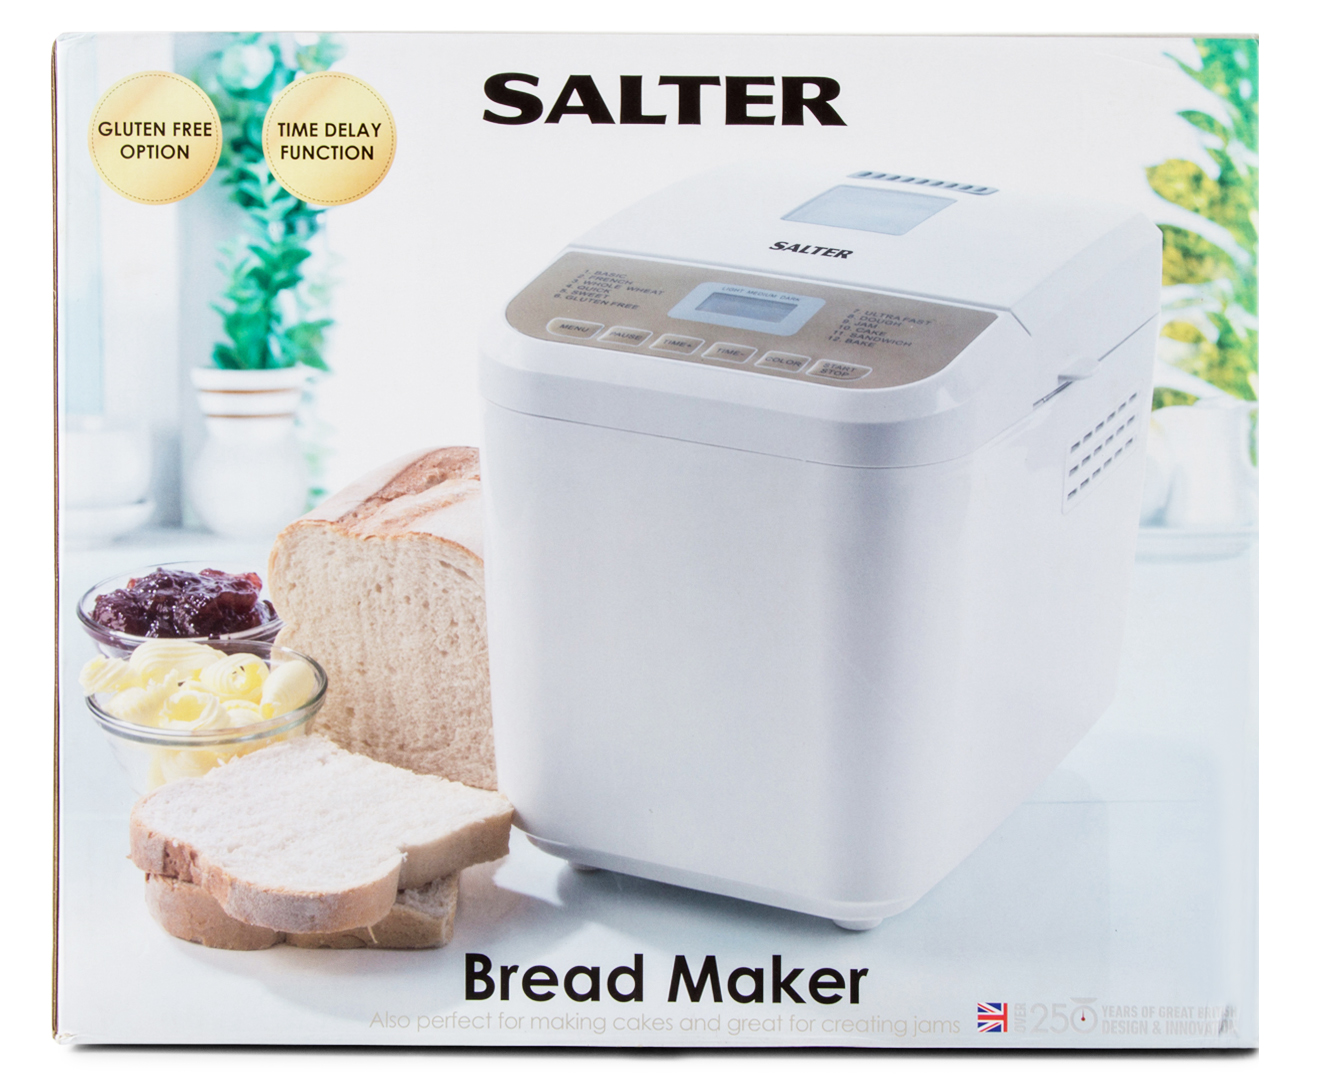 Salter Bread Maker w/ Gluten Free Option - White | eBay